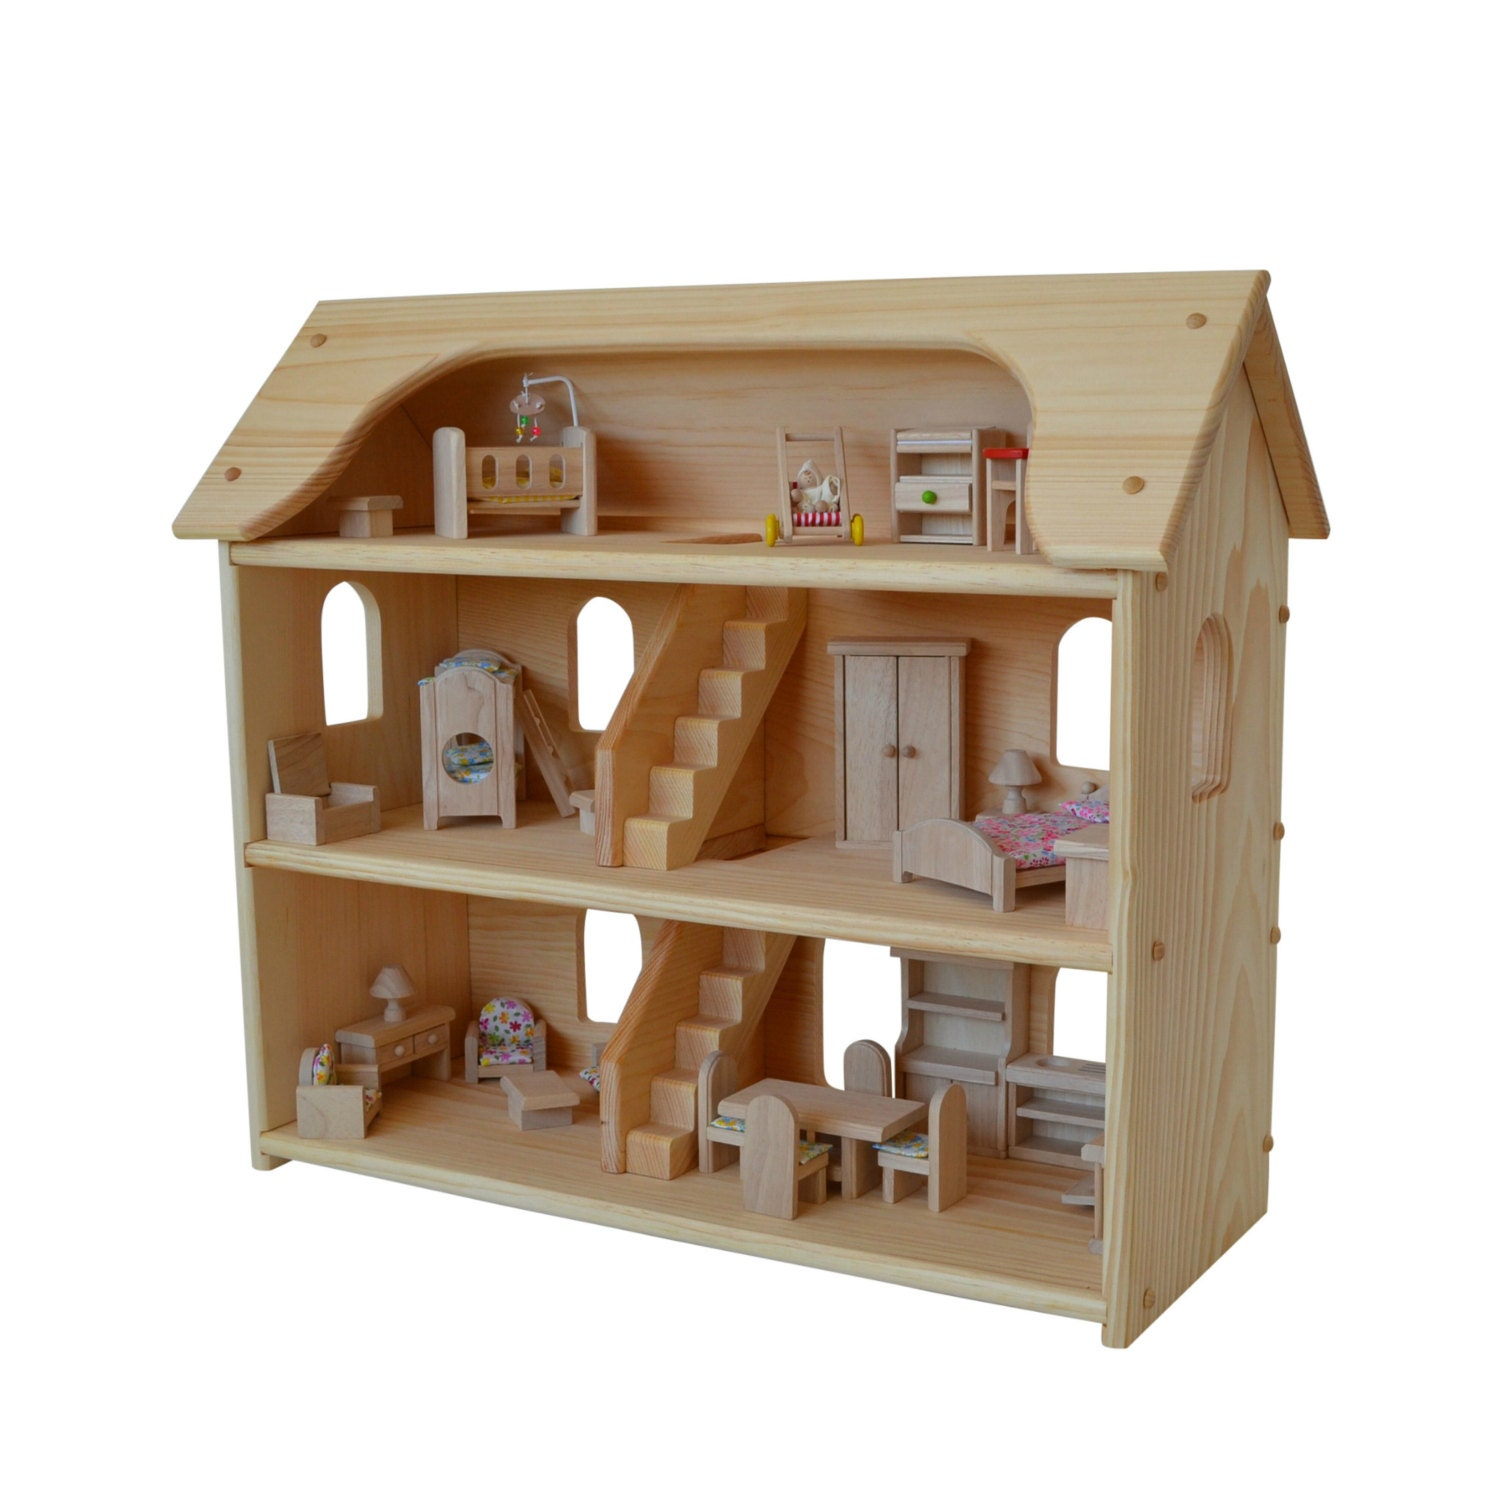 Handcrafted Natural Wooden Toy Dollhouse Furniture Set Waldorf